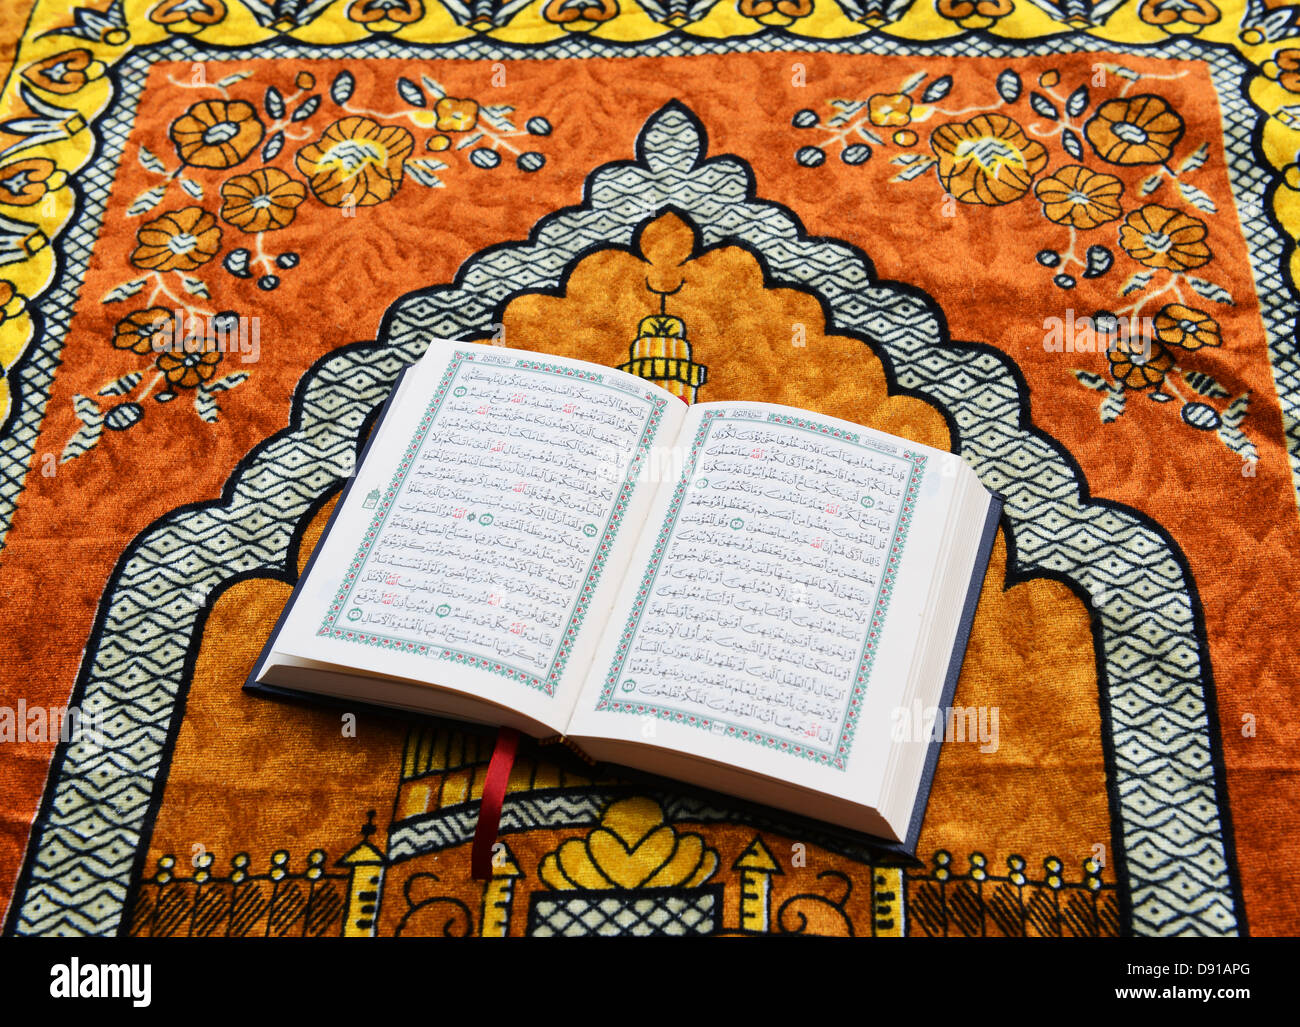 Surah Quran Stock Photos Images Alamy Stambul Qur An Mini 30 Juz Koran Holy Book Religious Text